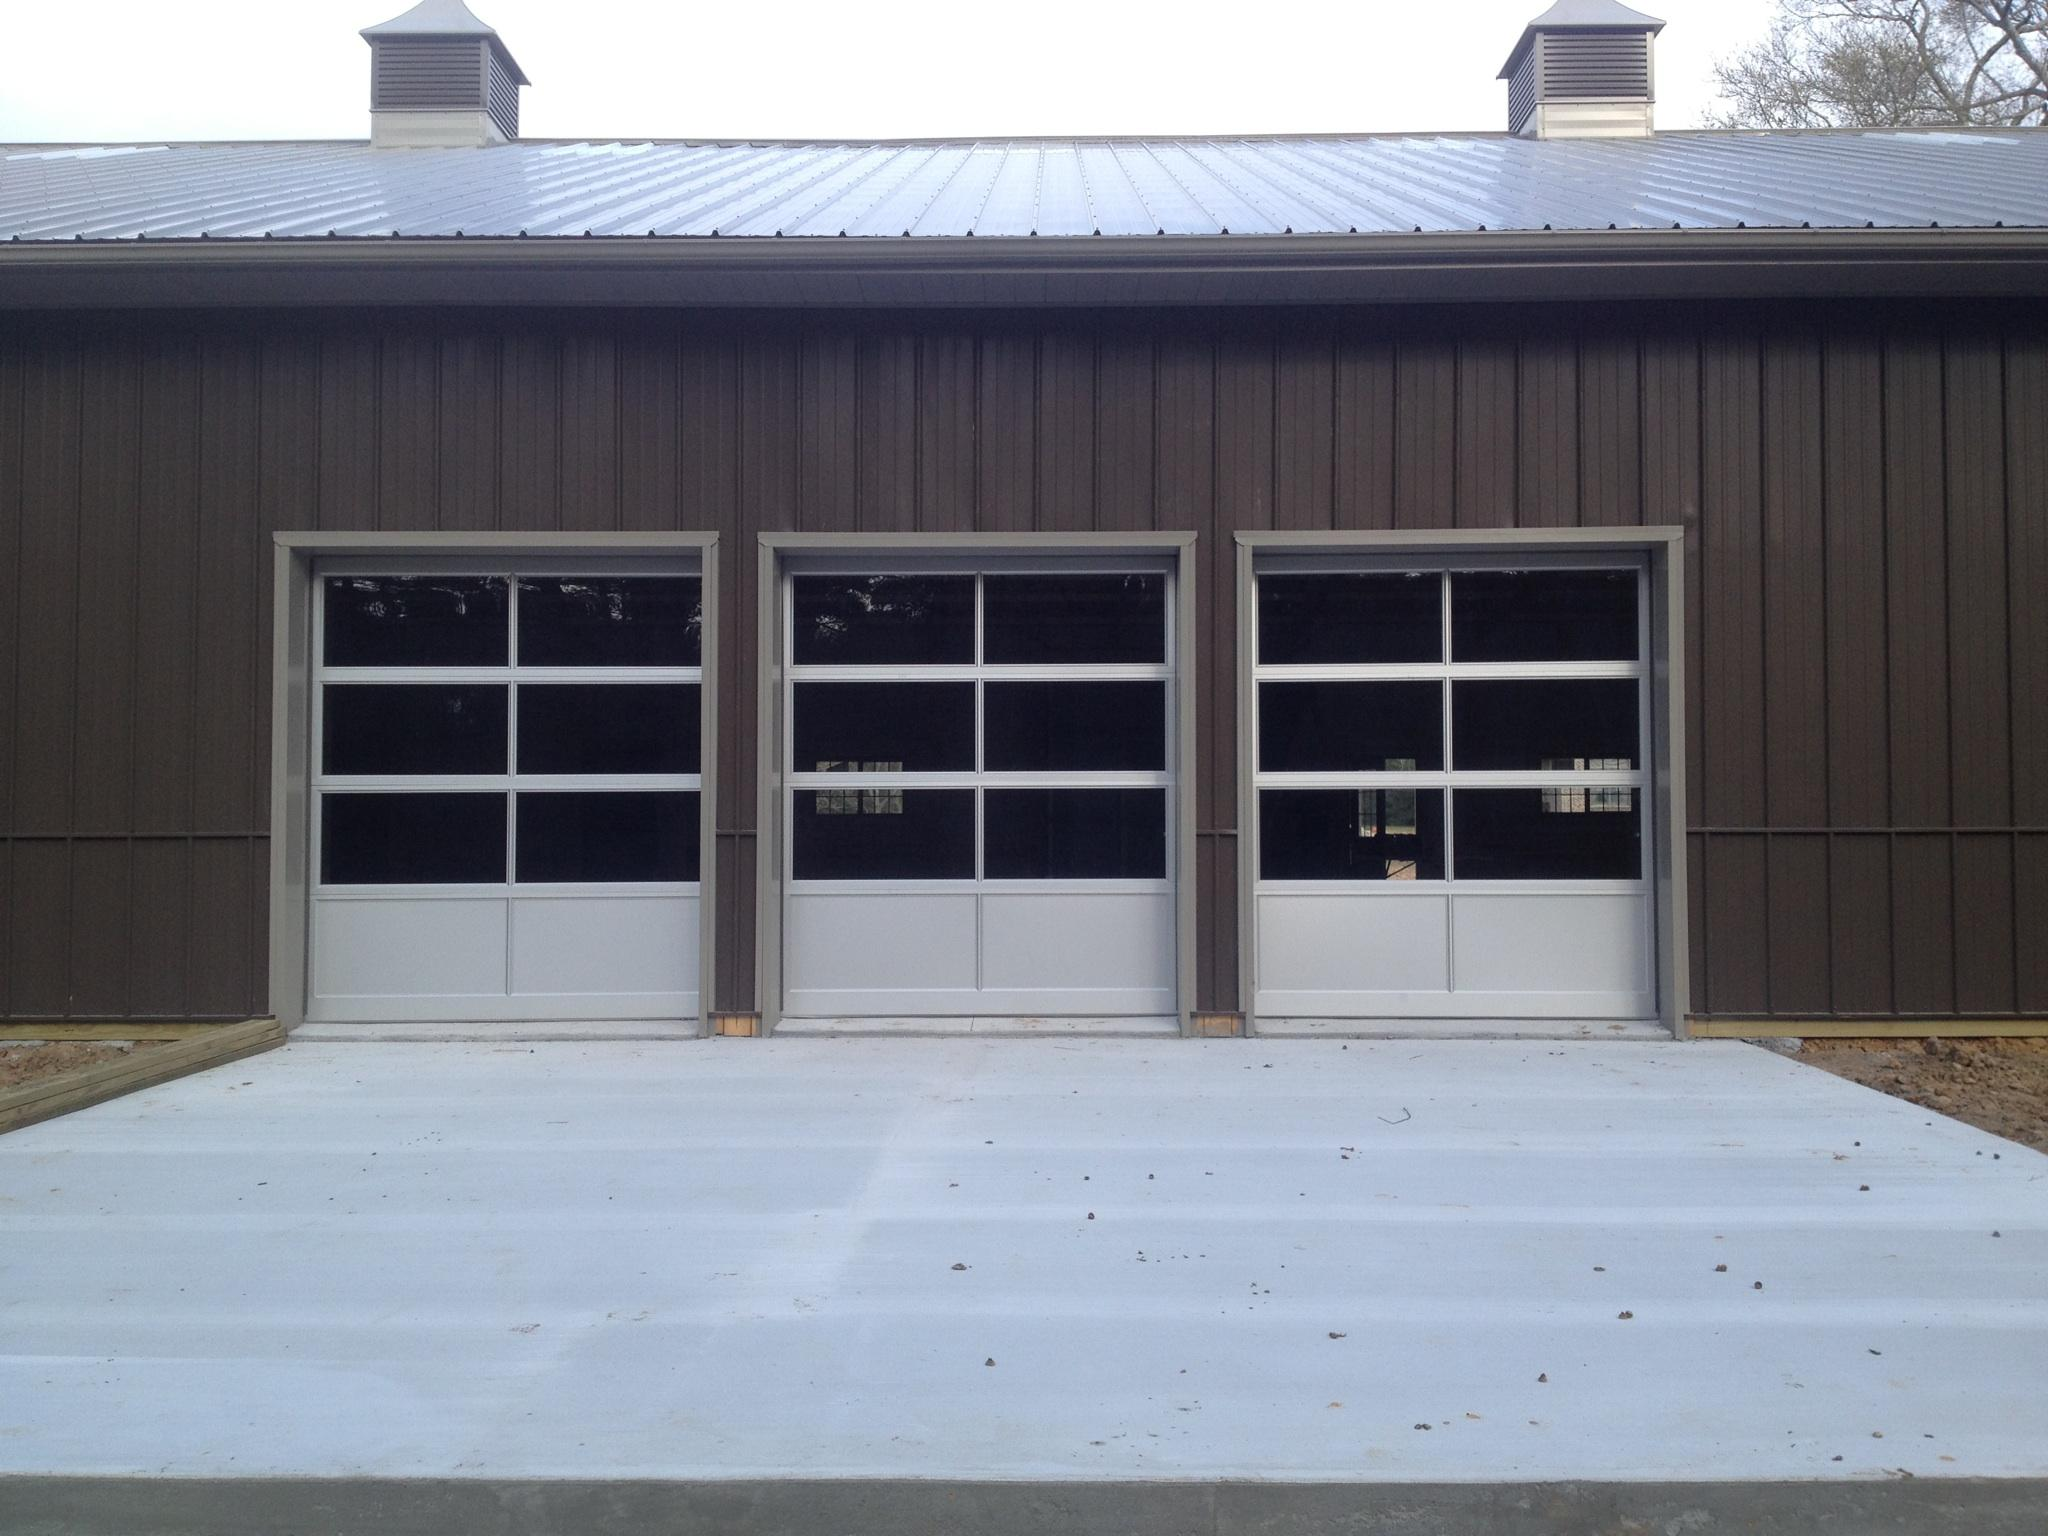 ... steel service doors fire-rated doors loading dock doors and more u2013 at K.T.M. Door Control weu0027re ready to repair and install your commercial door. & Commercial Photo Gallery u2013 KTM Door Control u2013 the best garage door ...